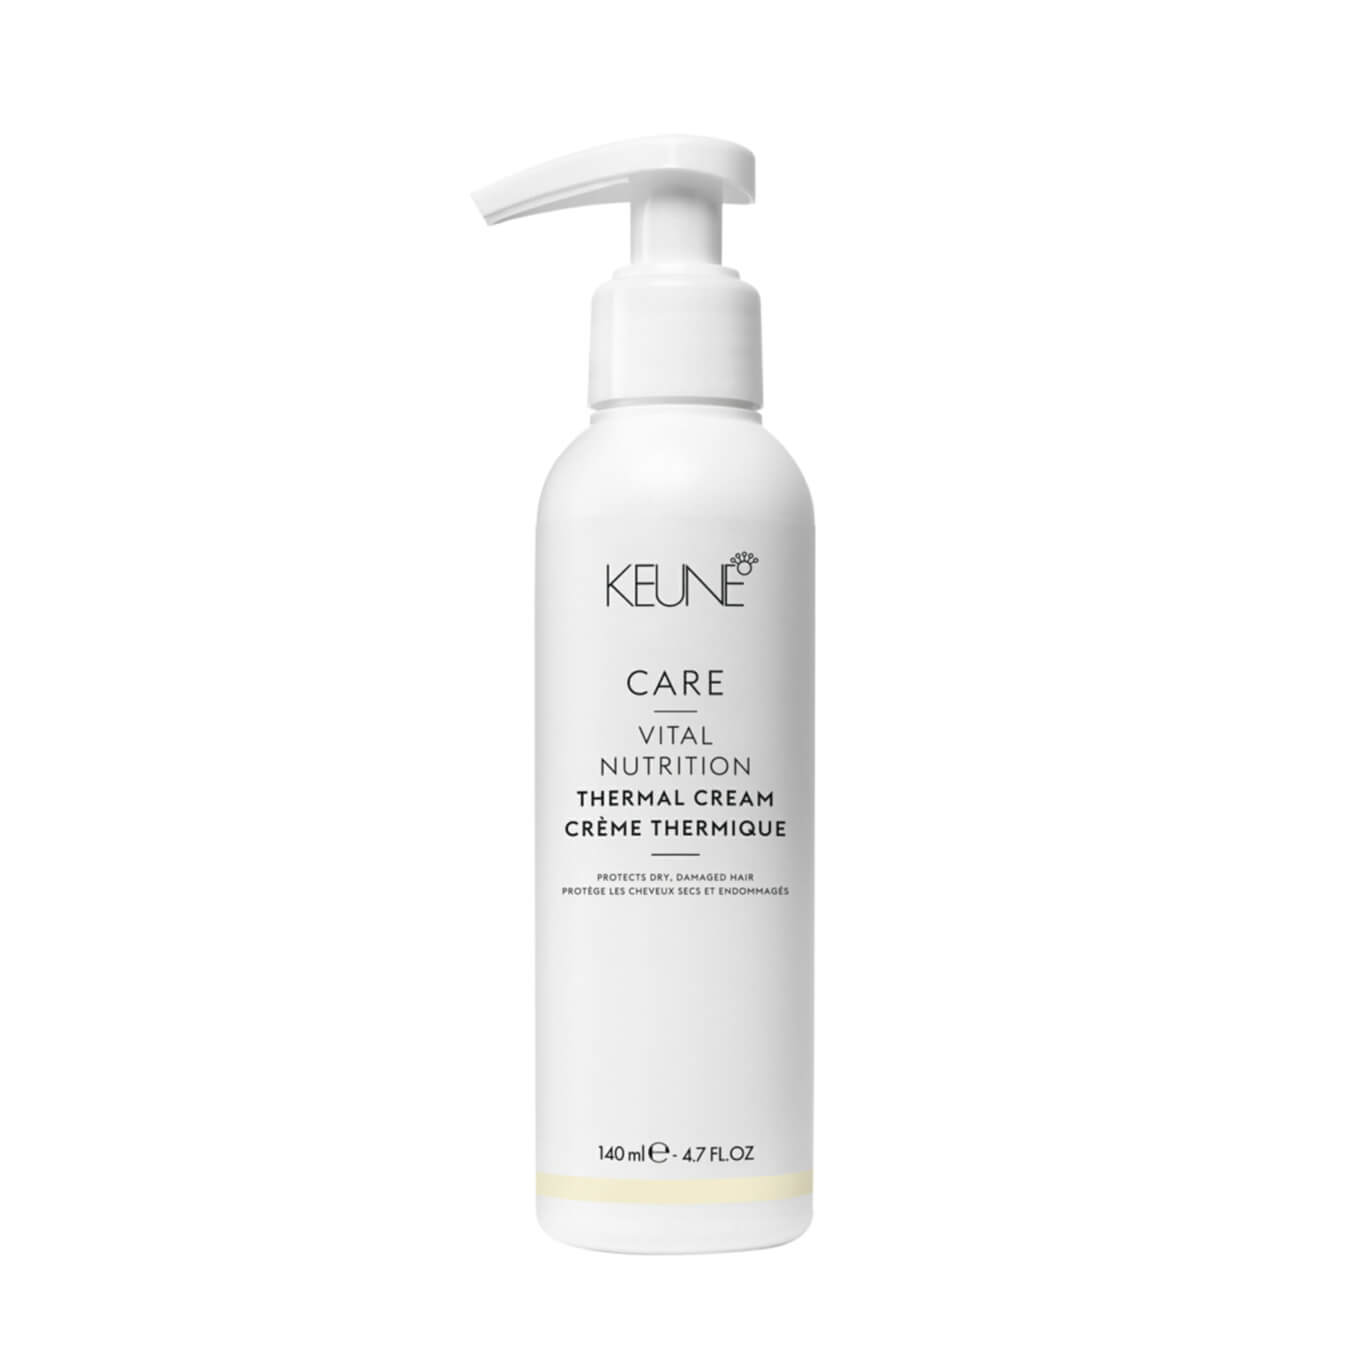 Koop Keune Care Vital Nutrition Thermal Cream 140ml